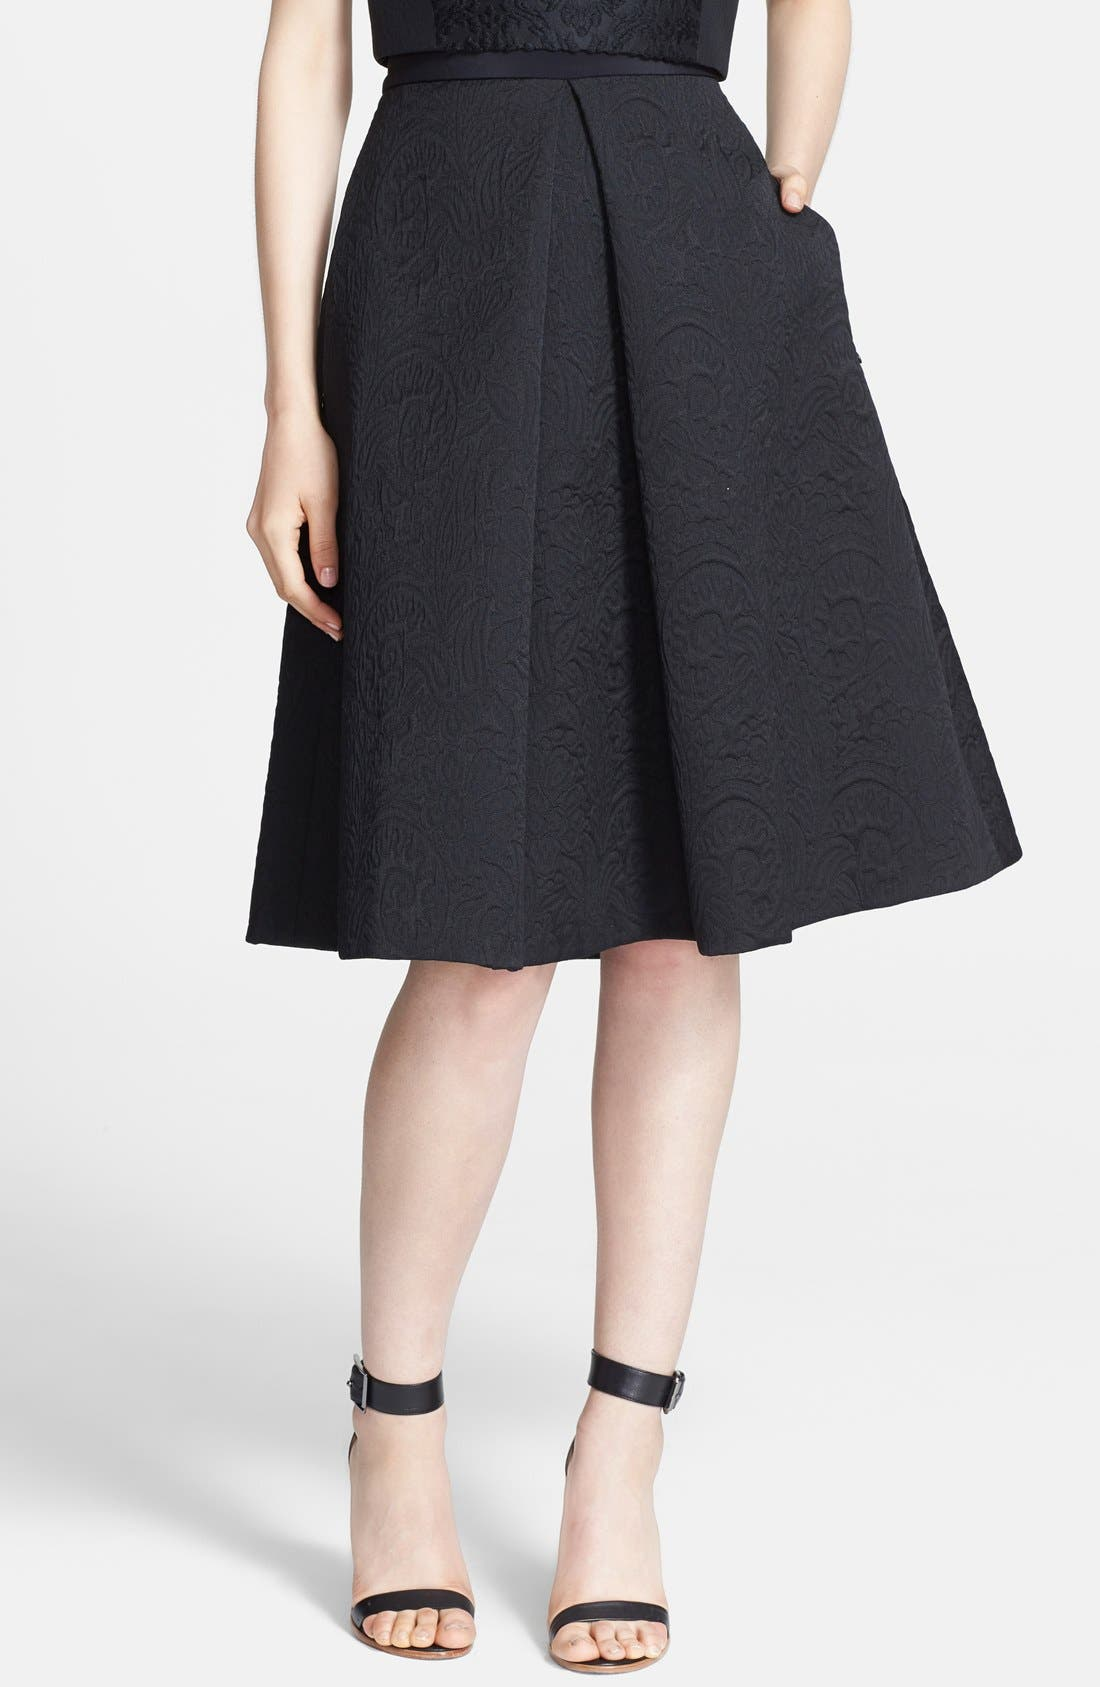 Alternate Image 1 Selected - Tibi 'Lia' Jacquard Midi Skirt